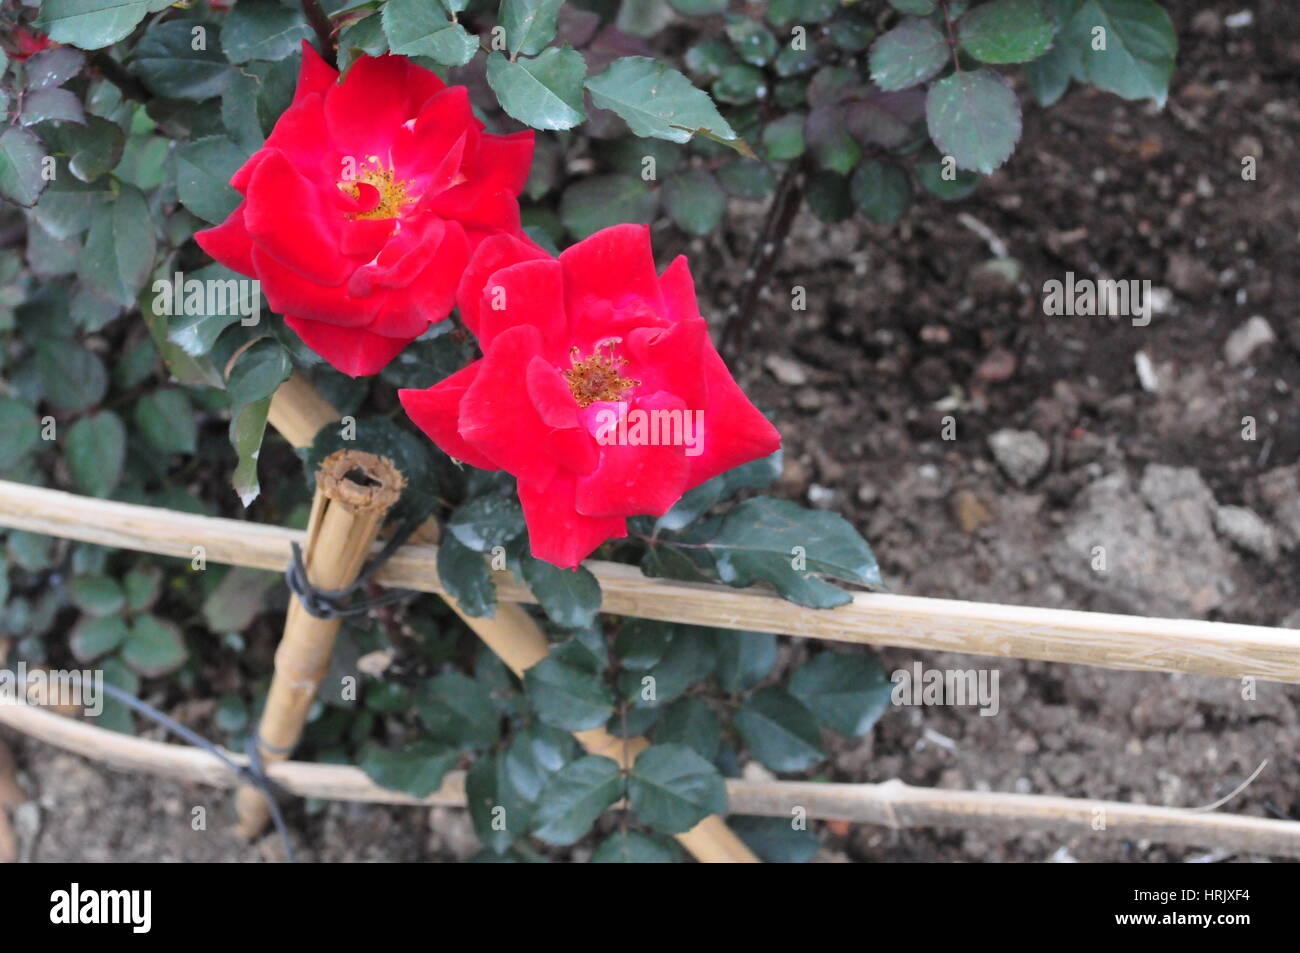 Asian Roses Growing Along a Fence - Stock Image